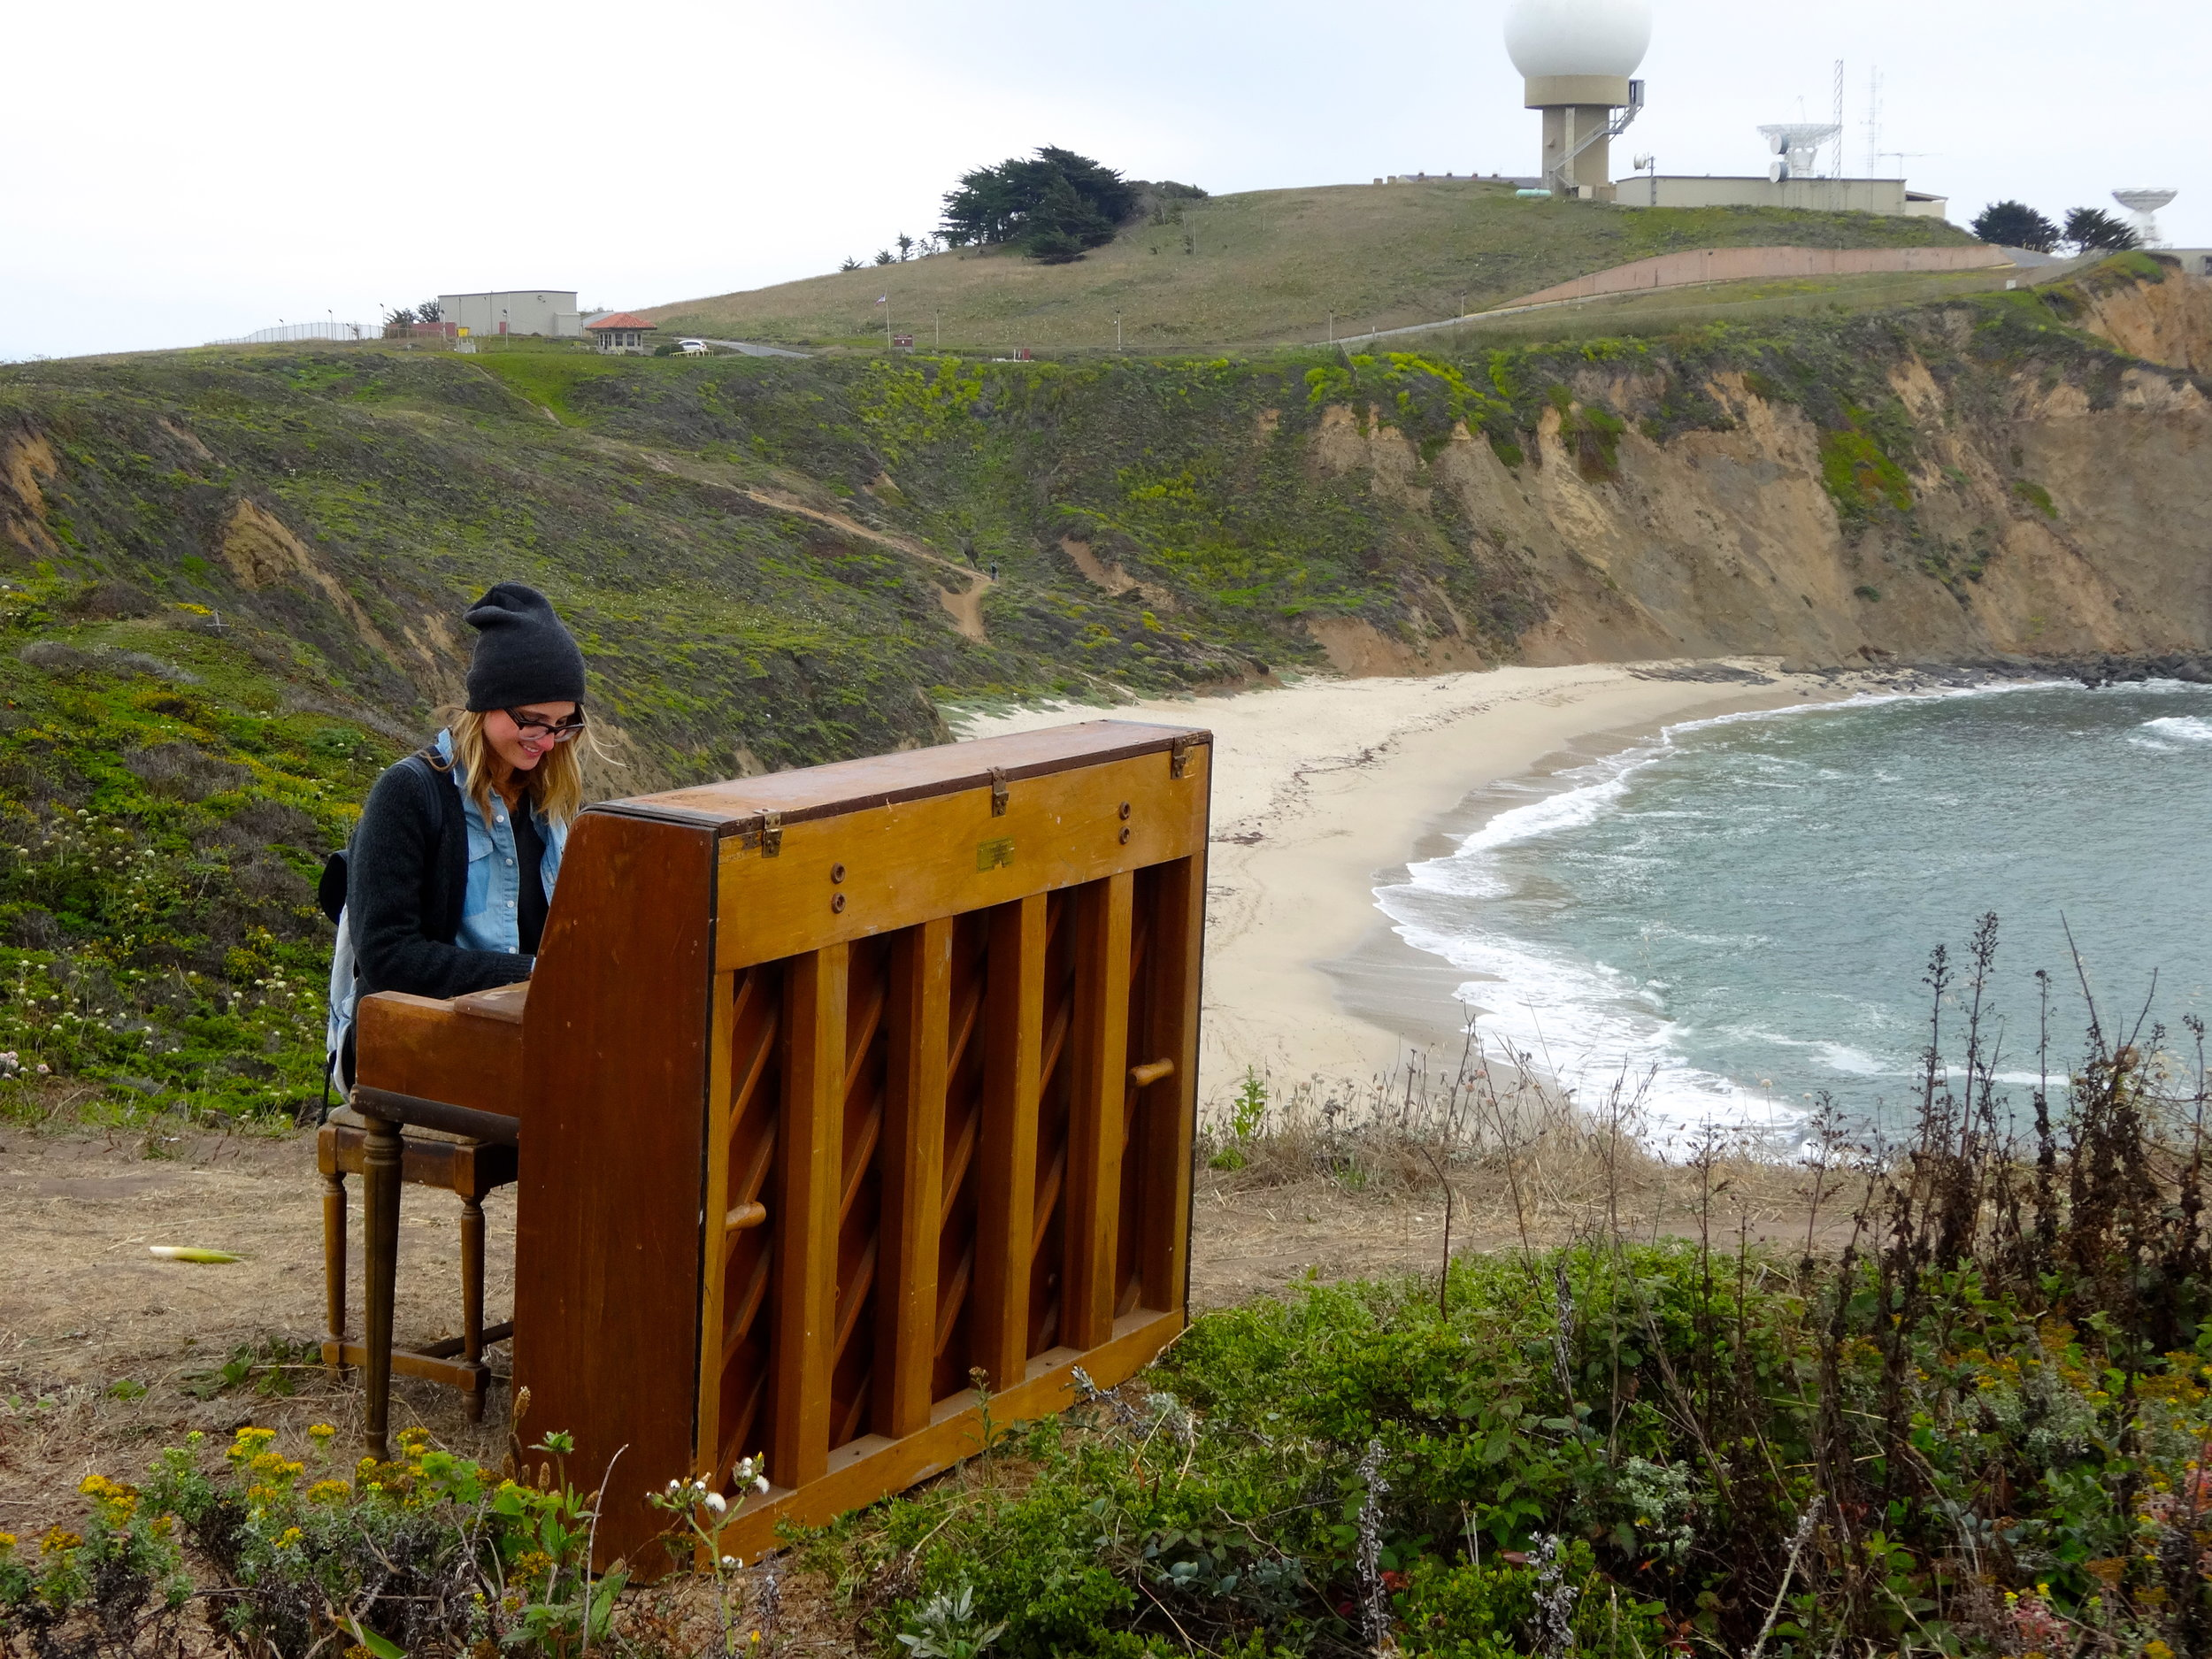 Just casually sitting. At a piano. That I can't play. On a cliff.